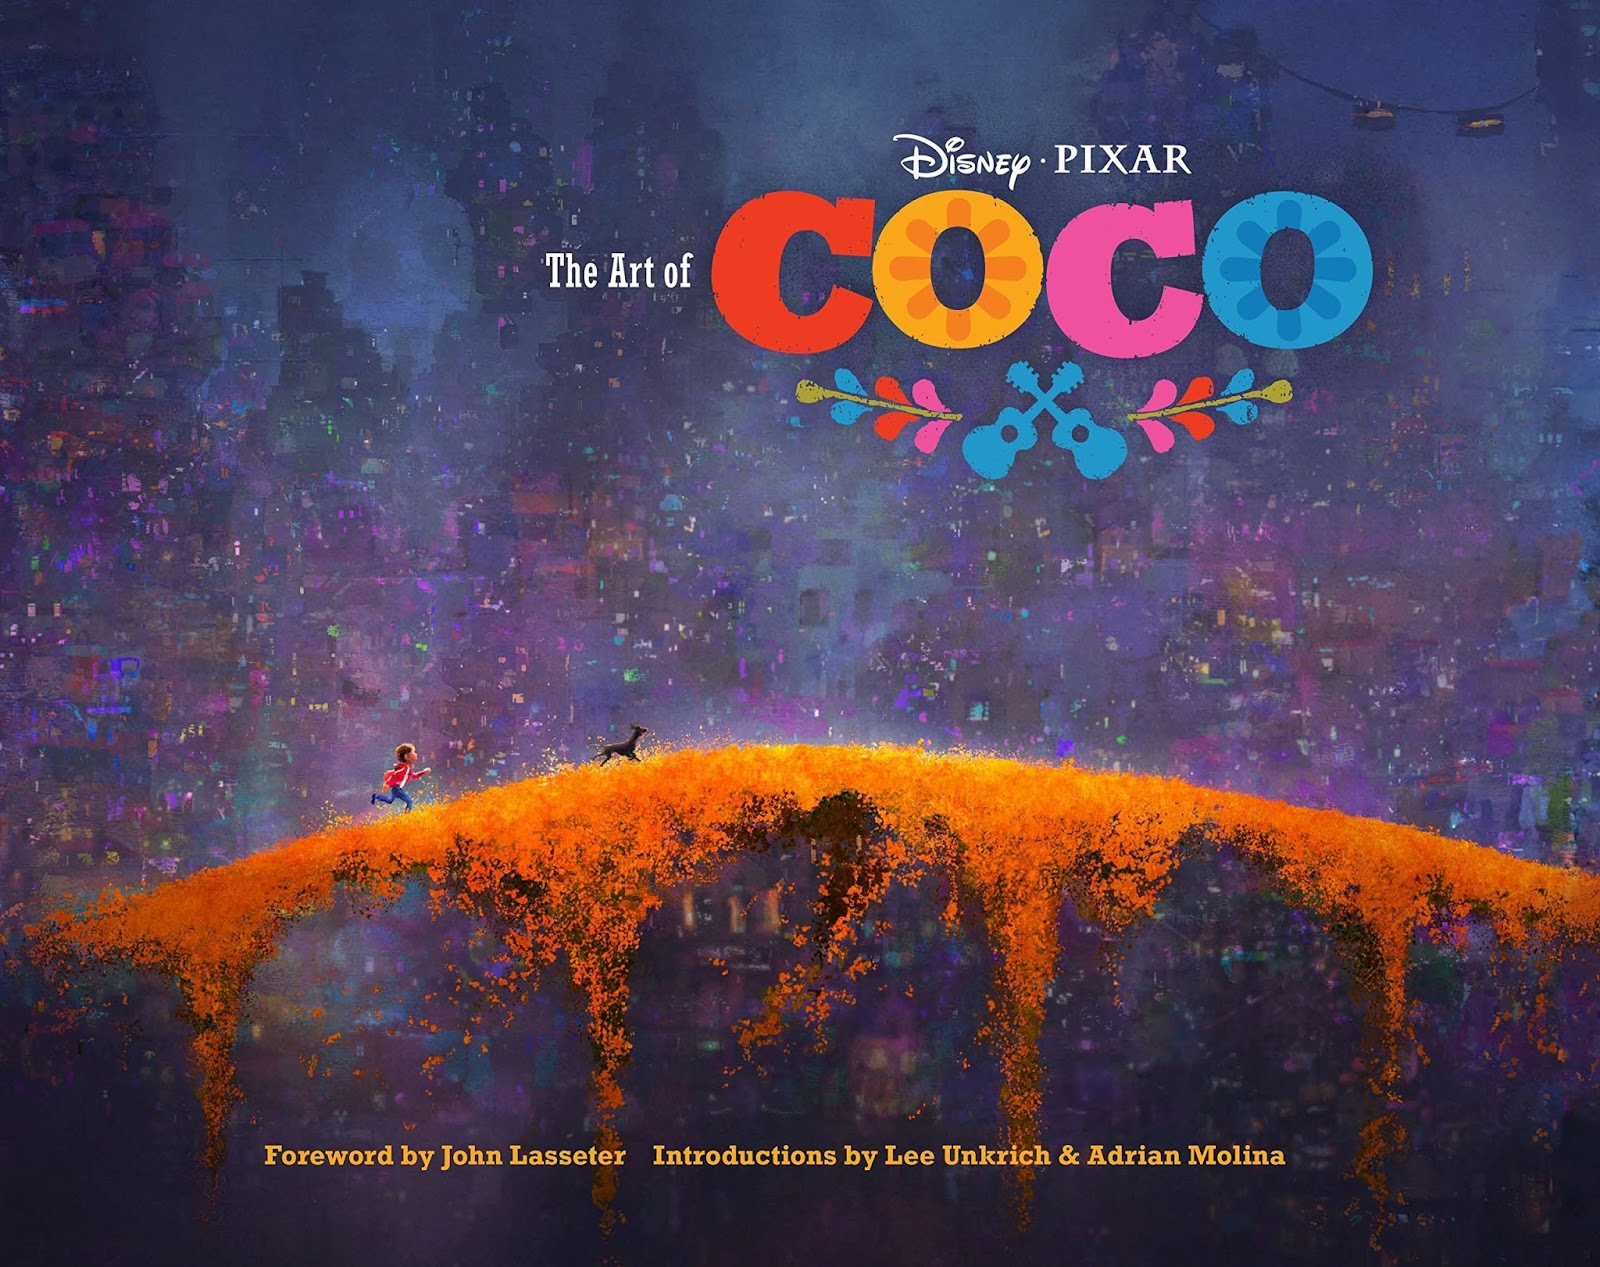 The Art Of Coco Amp Other Pixar Coco Books Popping Up On Amazon